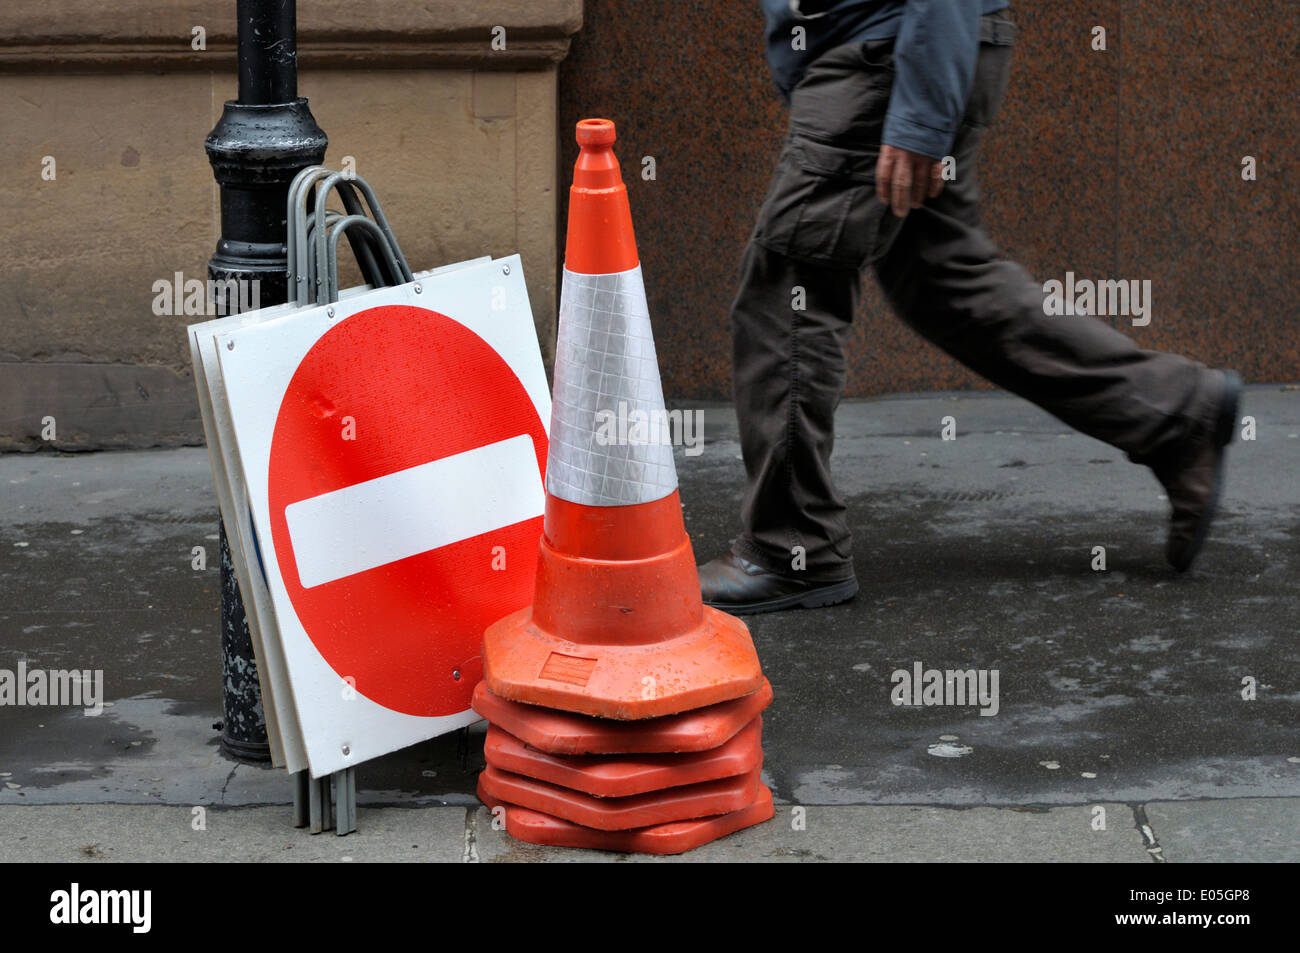 London, England, UK. Stacked traffic cones and No Entry signs by the street - Stock Image